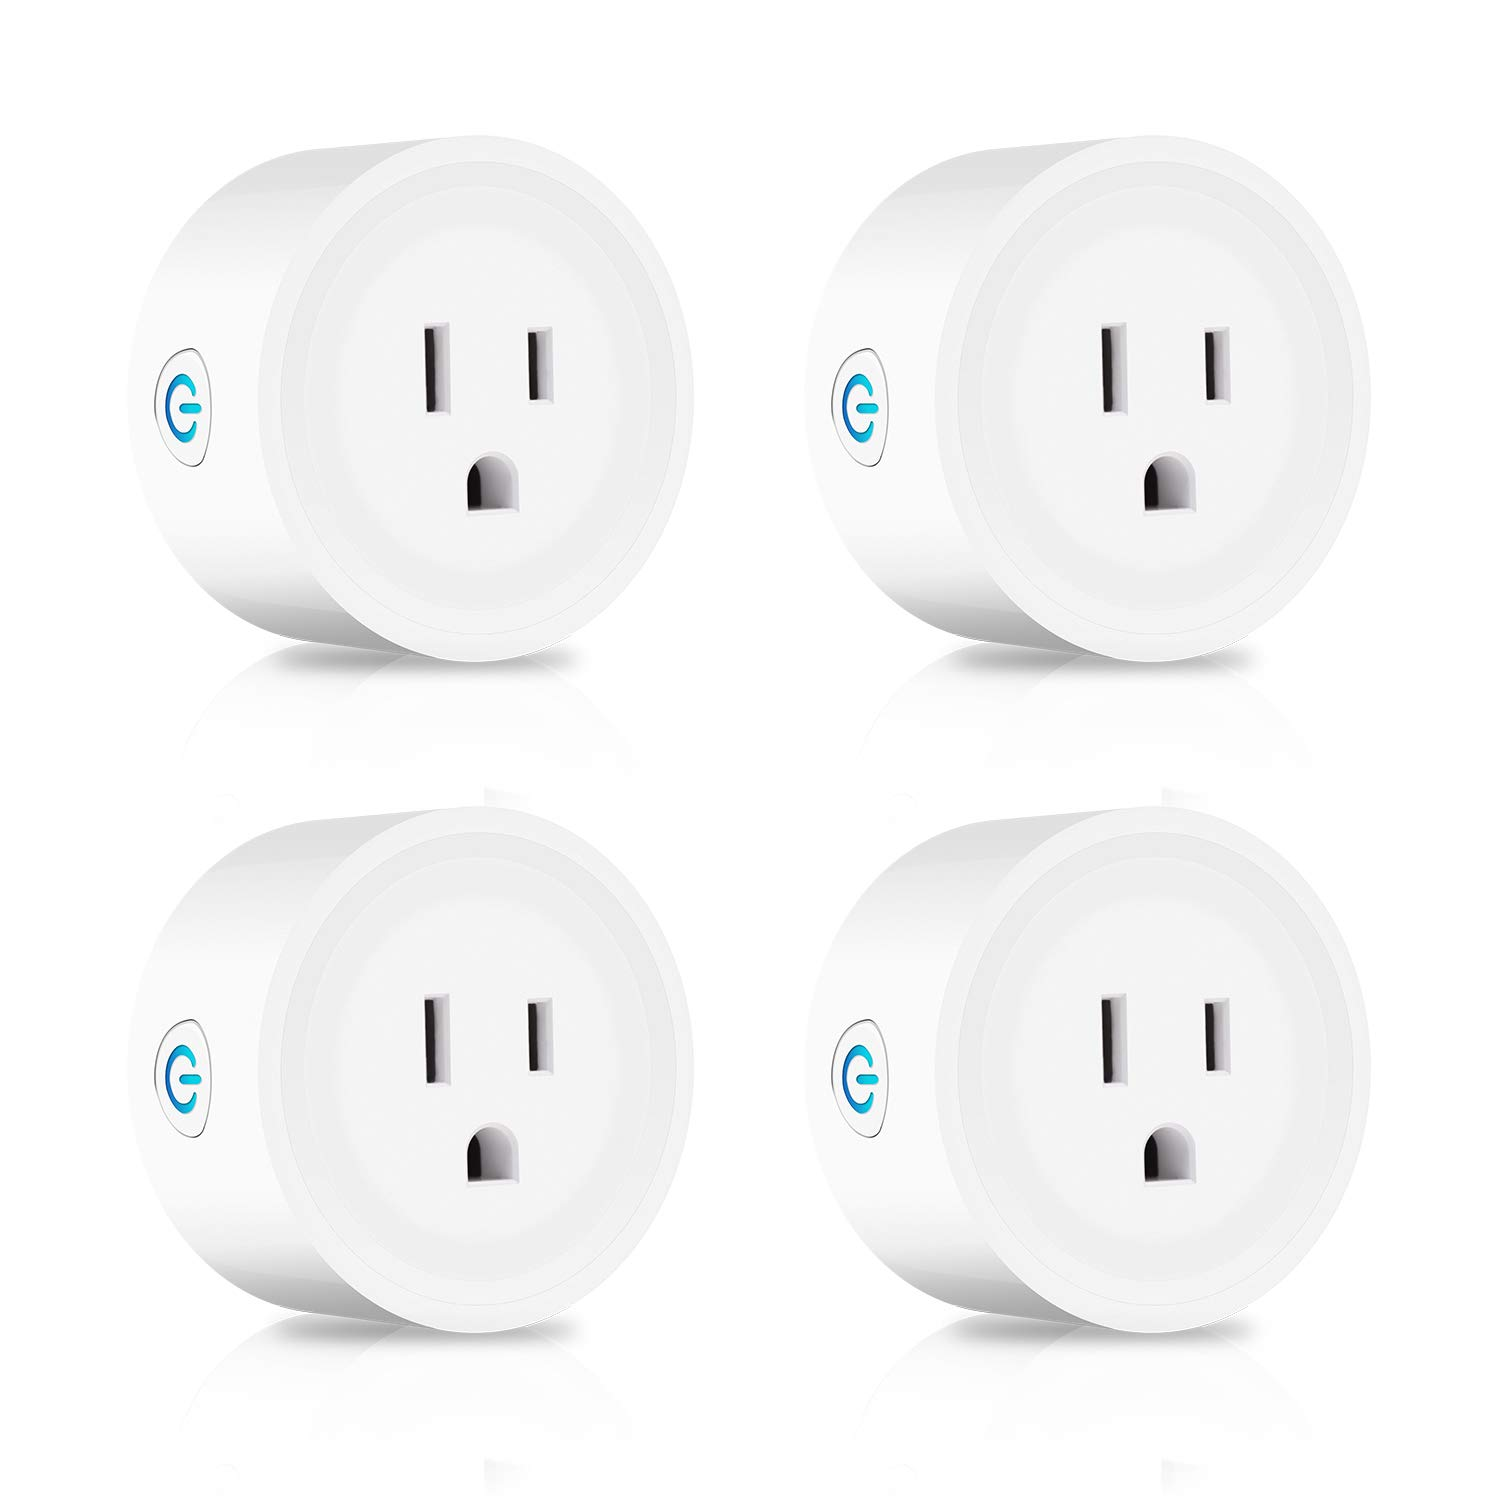 Smart Plug Mini Wifi Plug 4 Pack, Alexa Smart Outlet Timer Compatible with Amazon Alexa Google Assistant and IFTTT, No Hub Required Remote Control Socket by YOUXIU